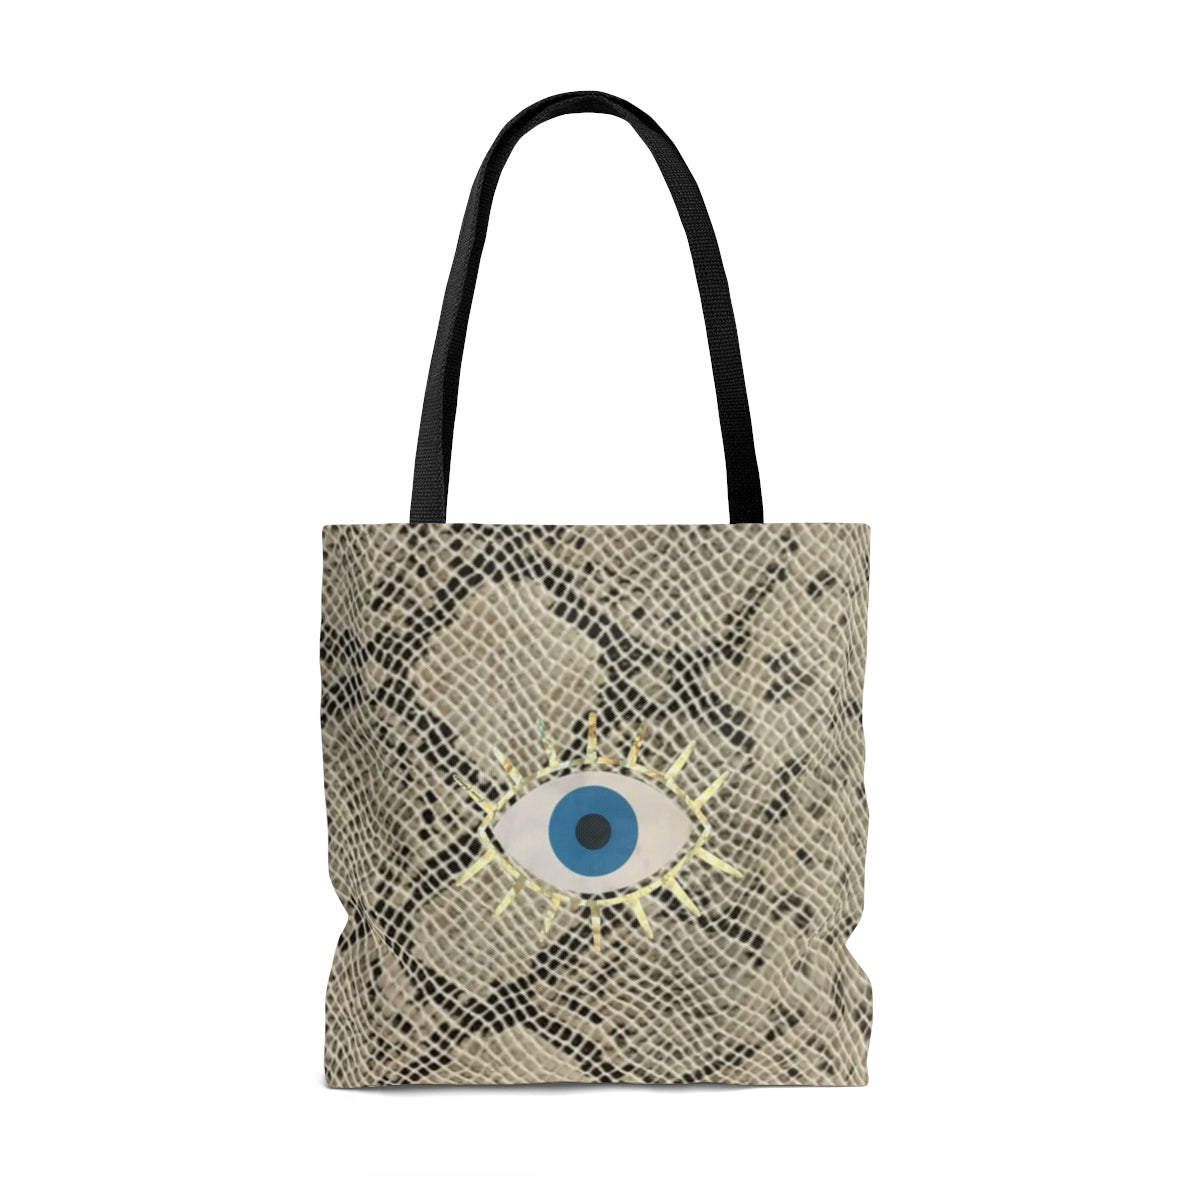 Tote Bag snake print evil eye